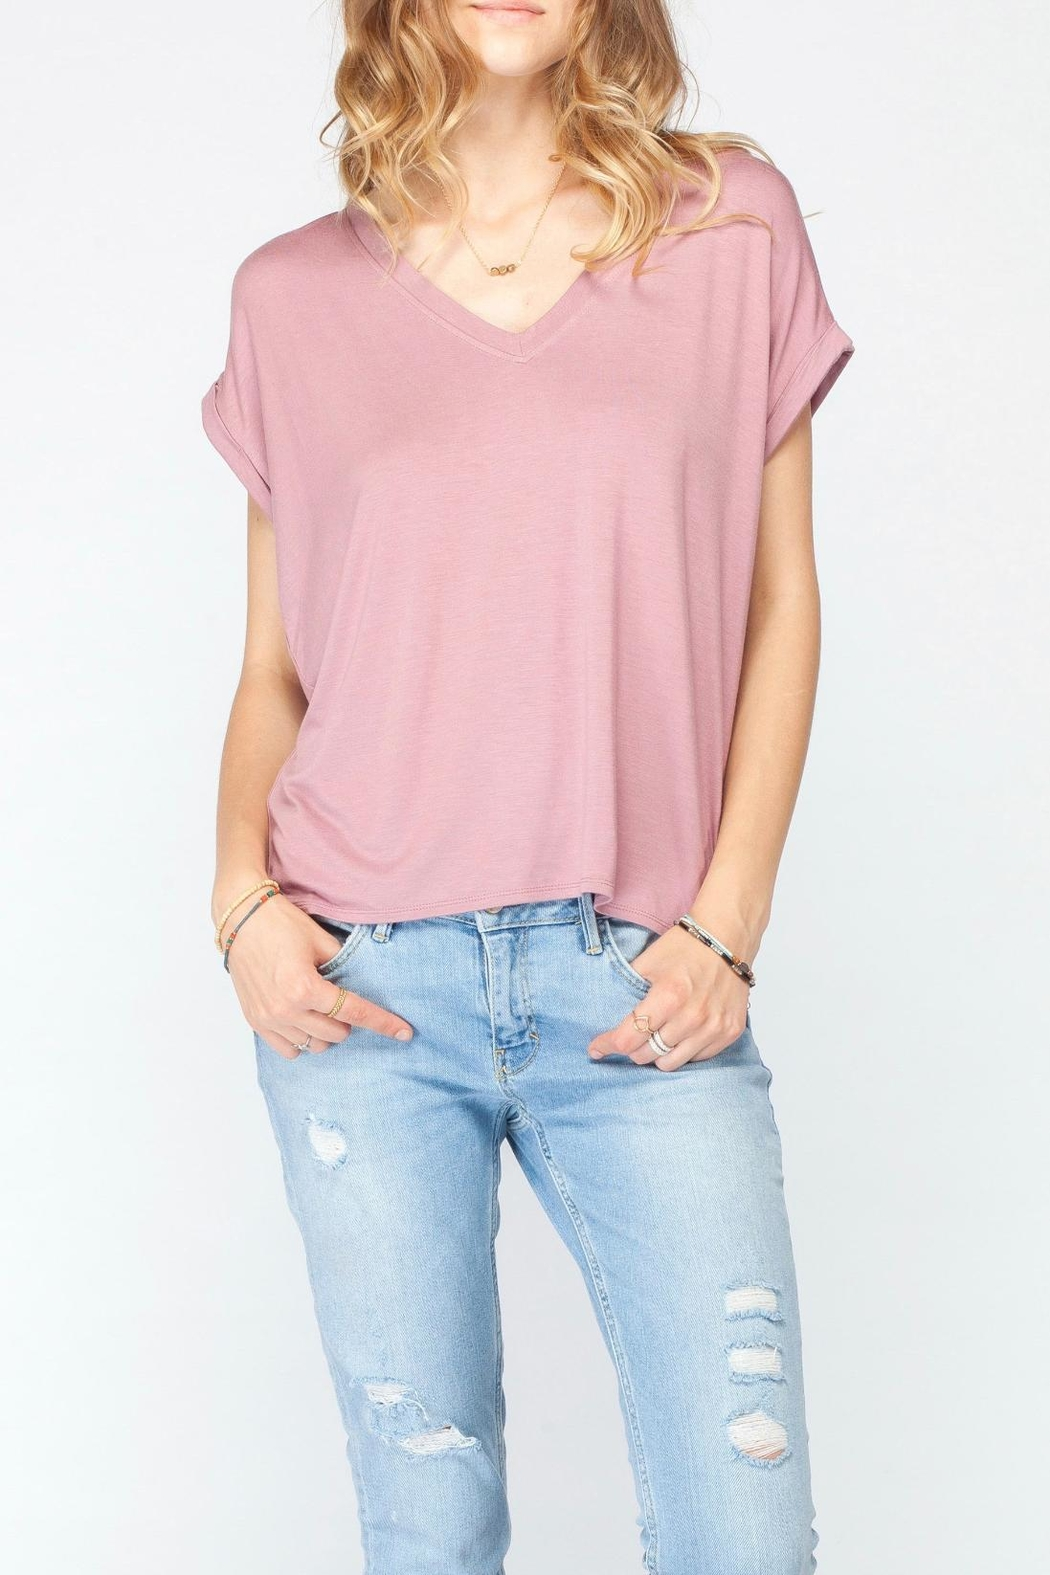 Gentle Fawn Soft Pink Basic Tee - Main Image